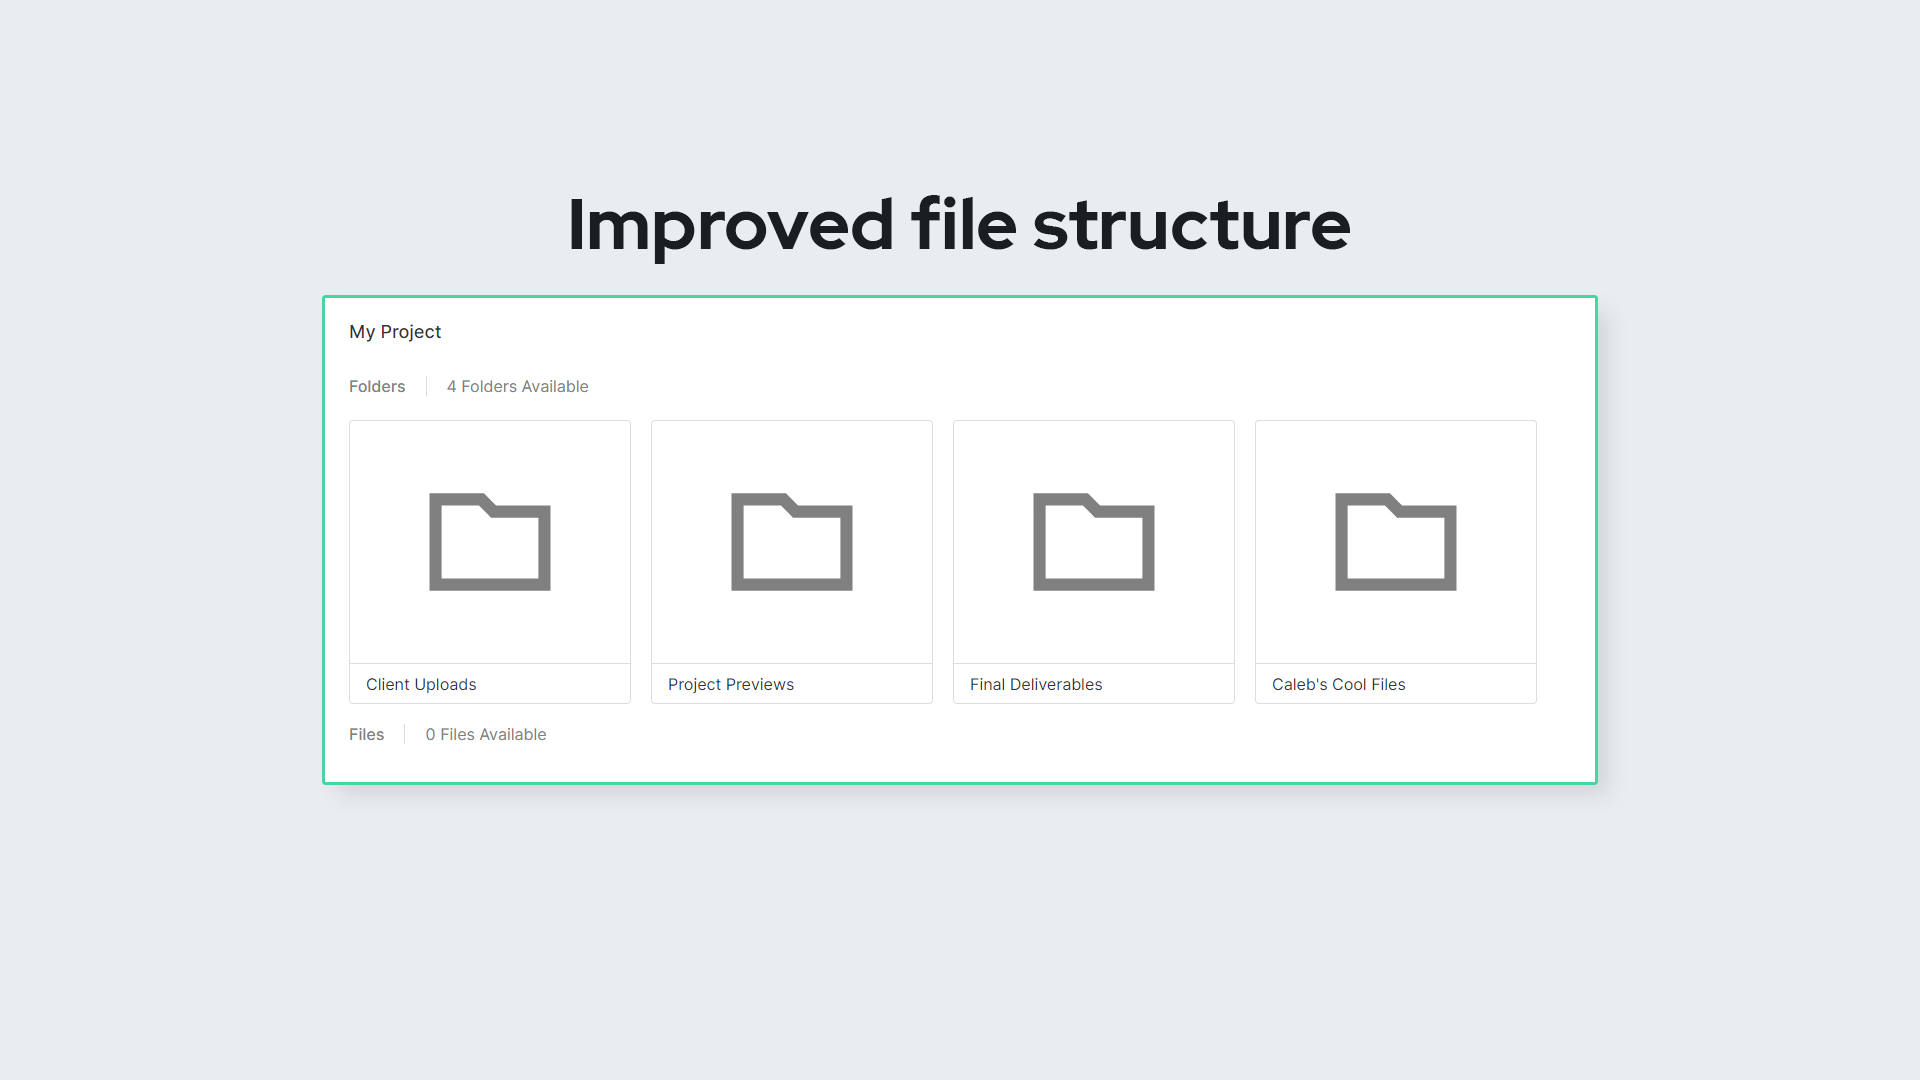 Improved file structure